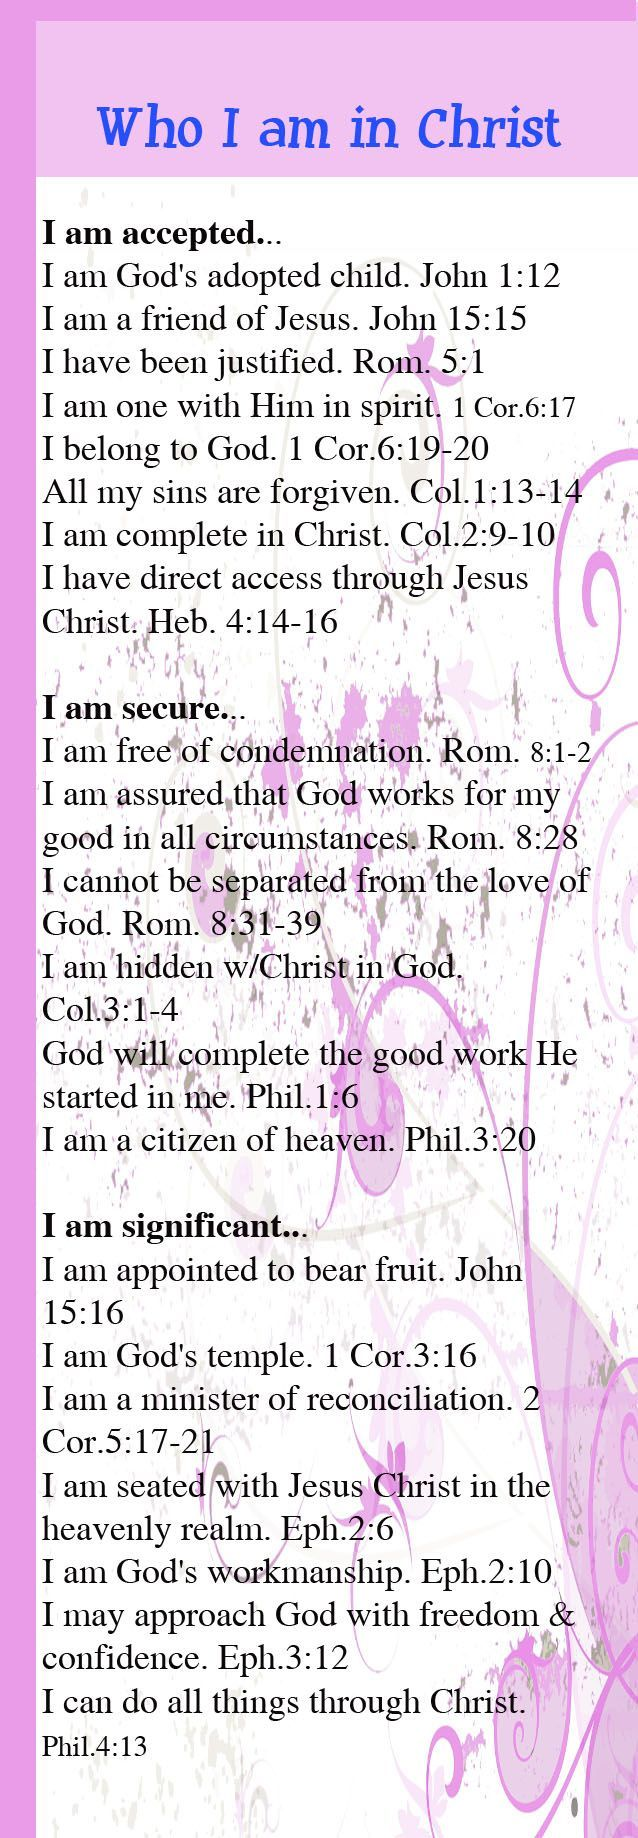 Smile and repeat after me I am accepted I am secured I am significant The Word of God says so 😀 Tell a friend 😜 God bless us by faith